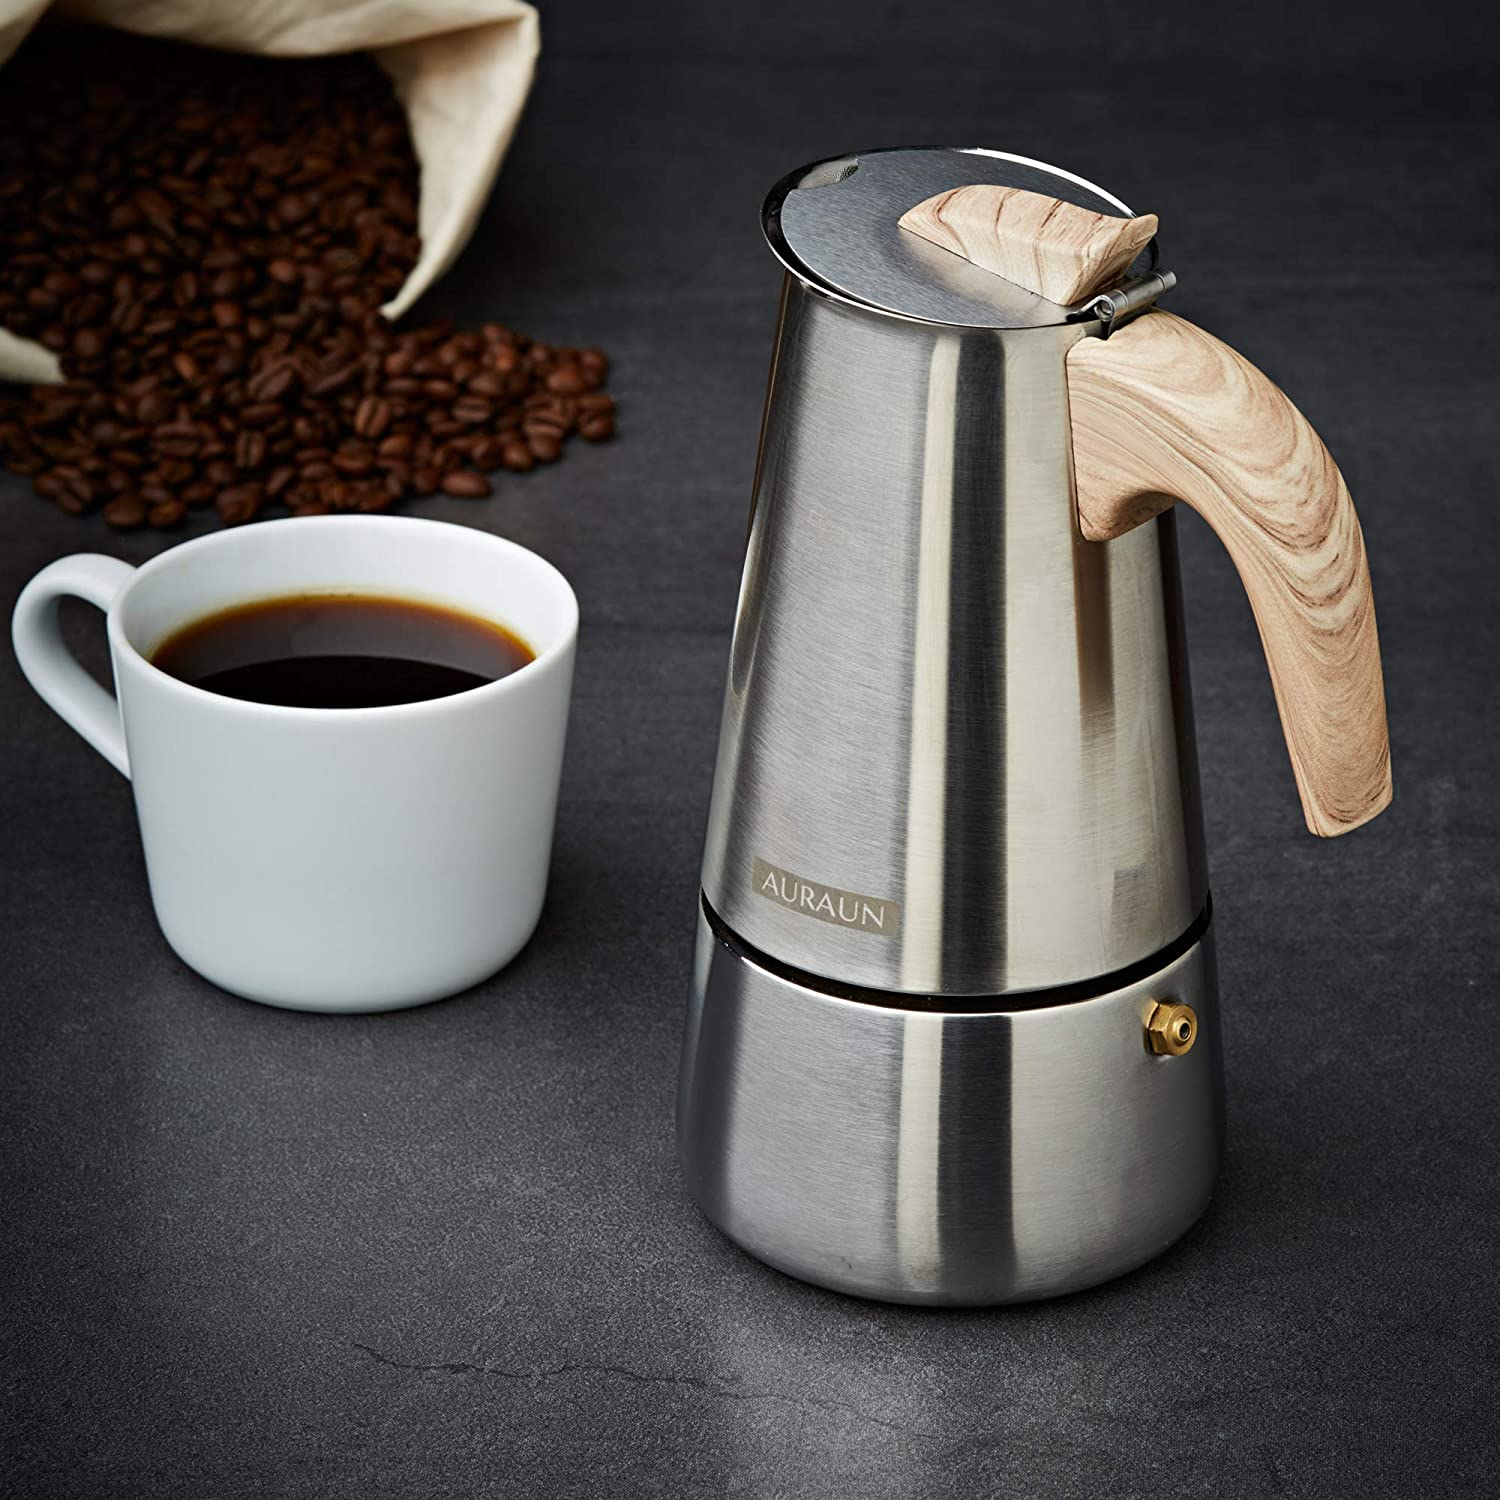 Stainless Steel Stovetop Espresso Maker 6-Cup, Wooden soft cool touch handle, Matt Finish, Classic & Contemporary design Great Italian Style Moka Pot, Makes Delicious Coffee, Simple Operation & Care.